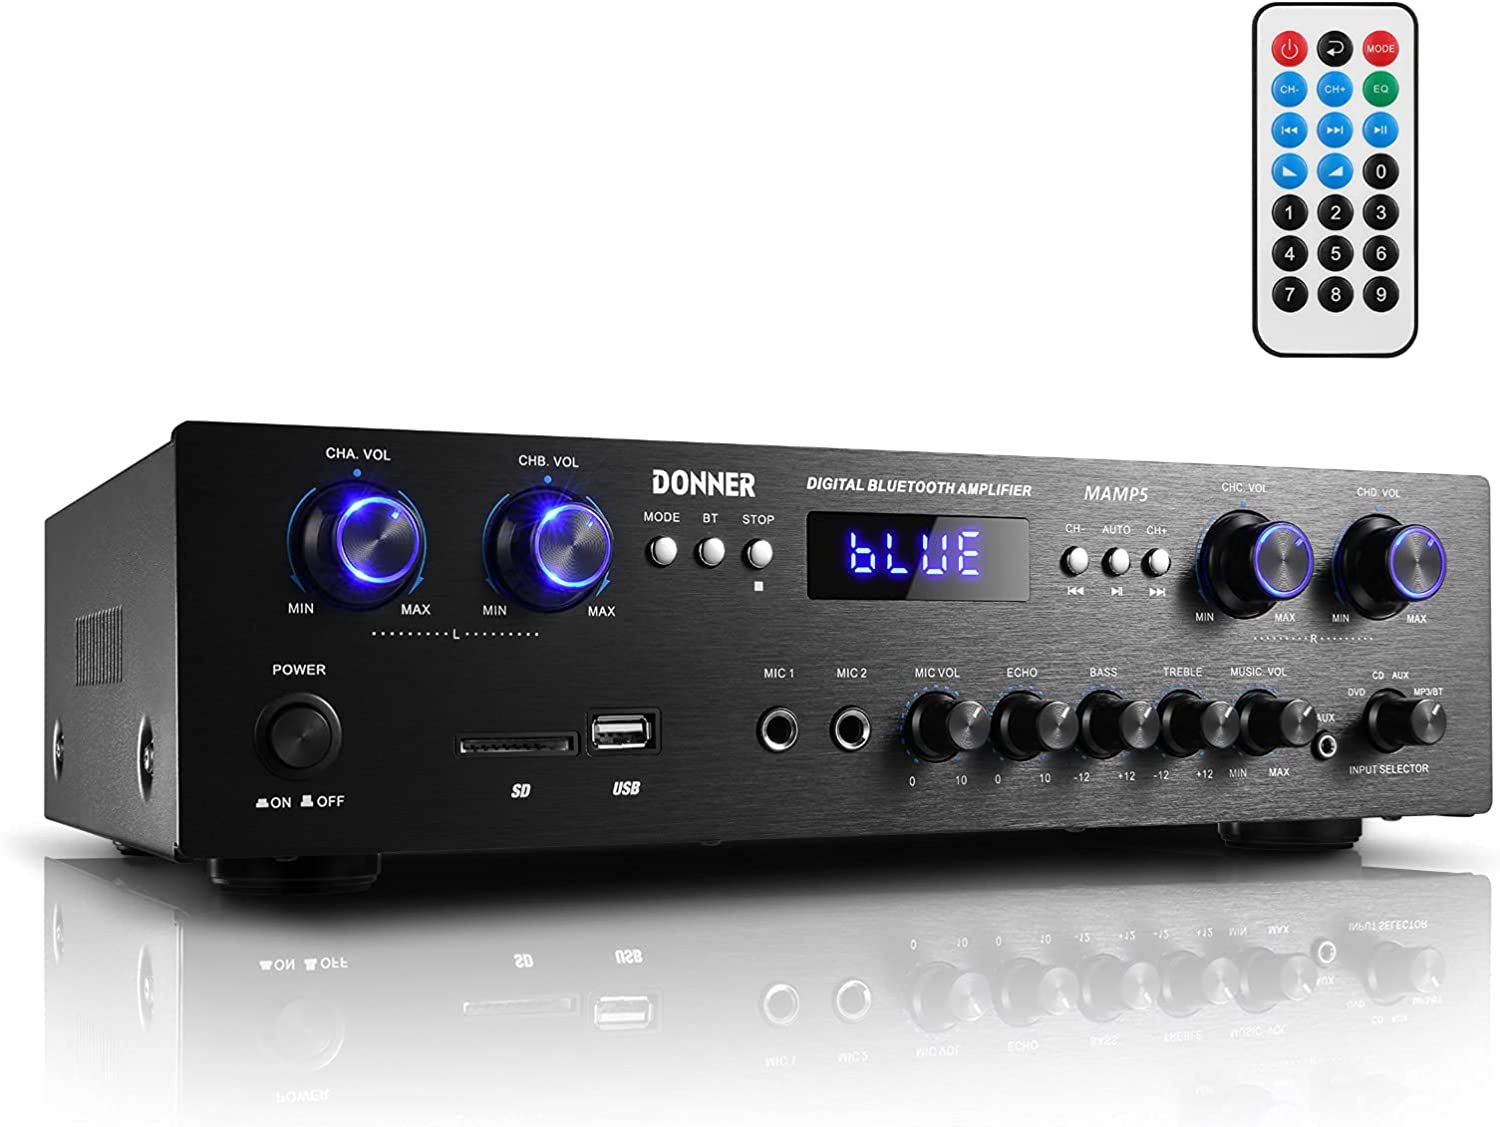 Donner 4 Channel Bluetooth 5.0 Audio Power Amplifier - Peak Power 440W Home Theater Stereo Receiver USB, SD,FM, 2 Mic in Echo, RCA, LED, Speaker Selector - for Studio, Home Use -MAMP5